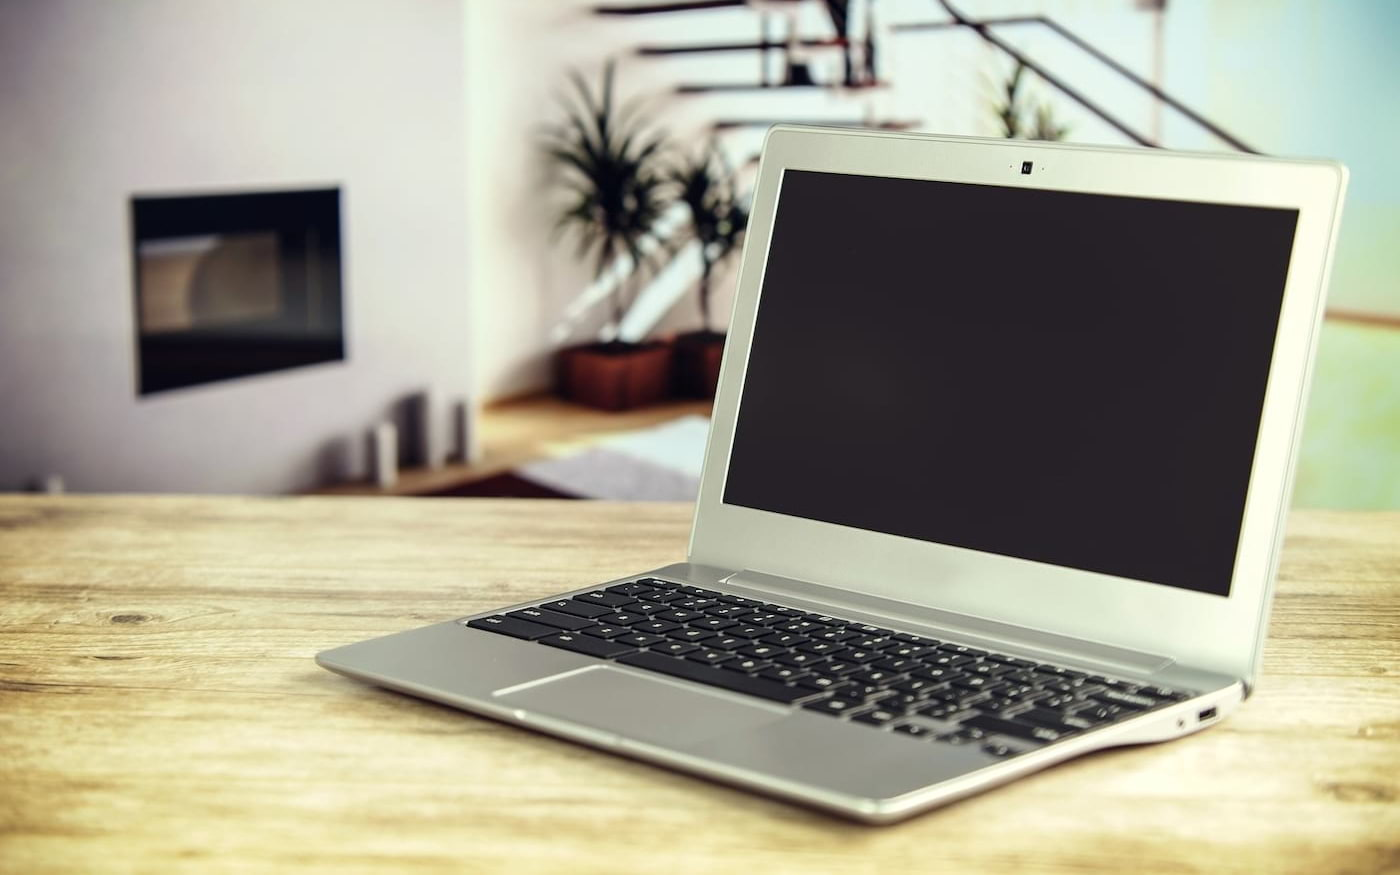 5 Formas de reaproveitar seu notebook obsoleto